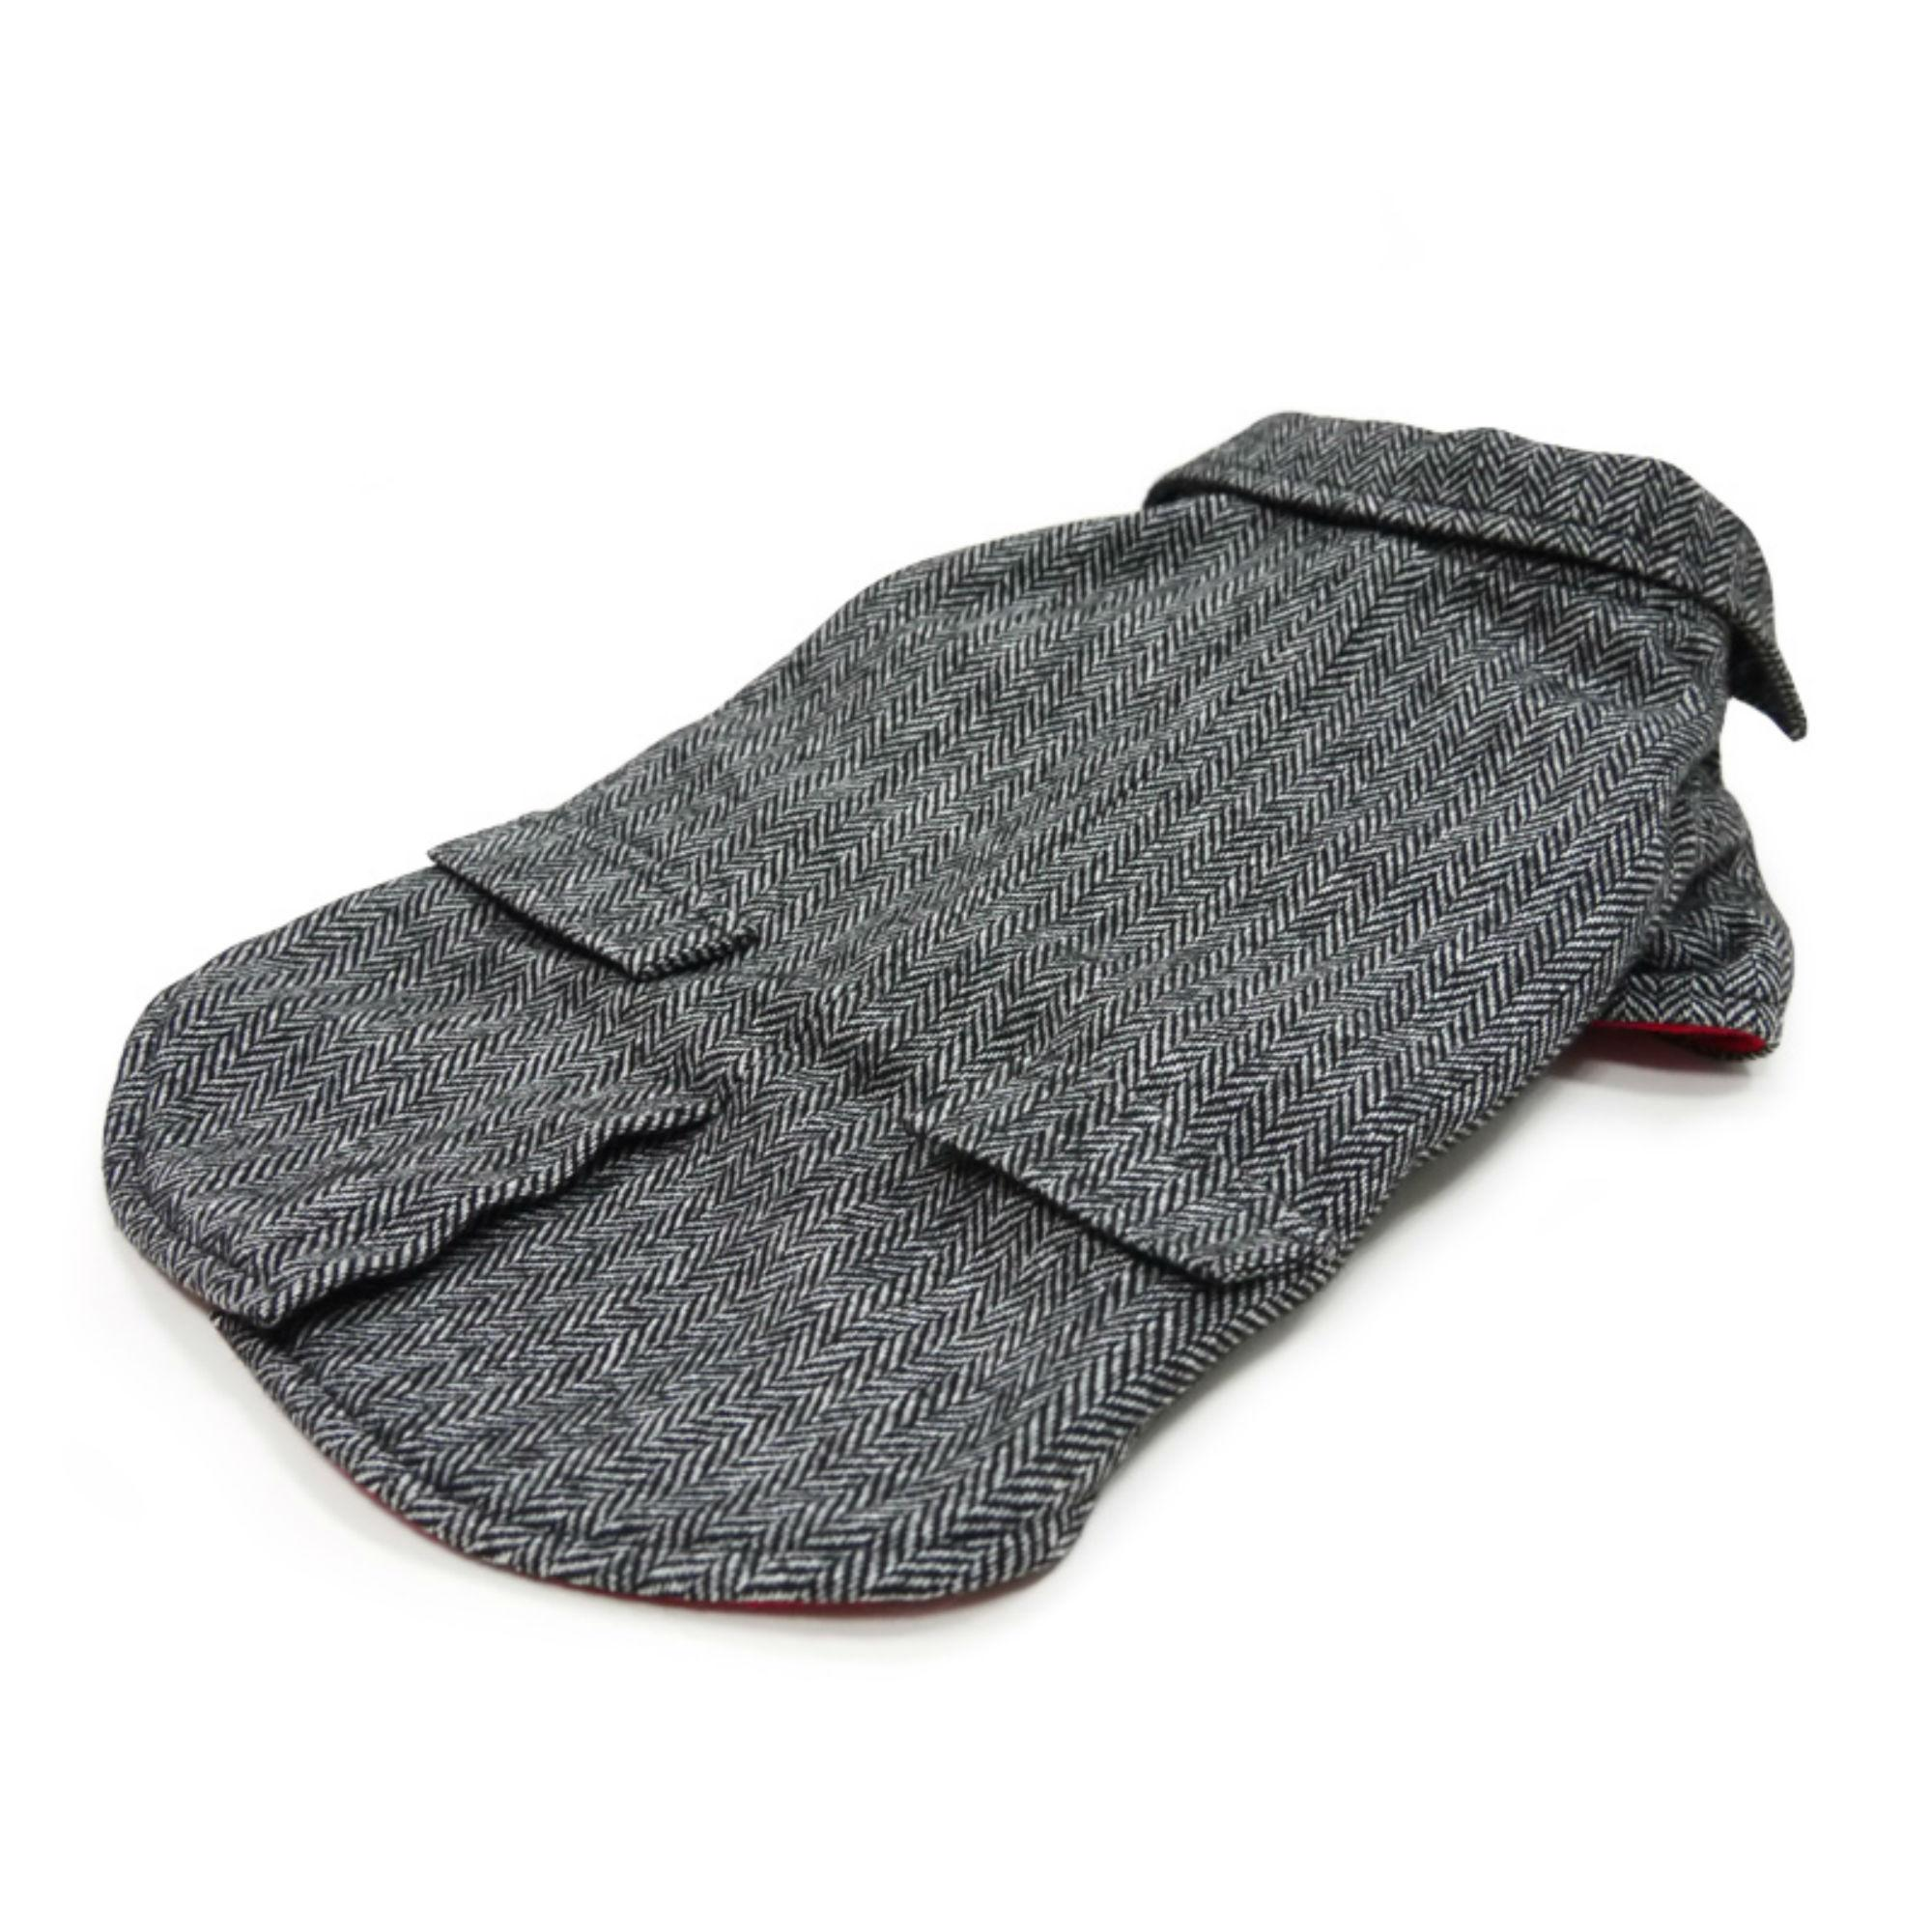 Tweed Dog Blazer by Dogo - Gray